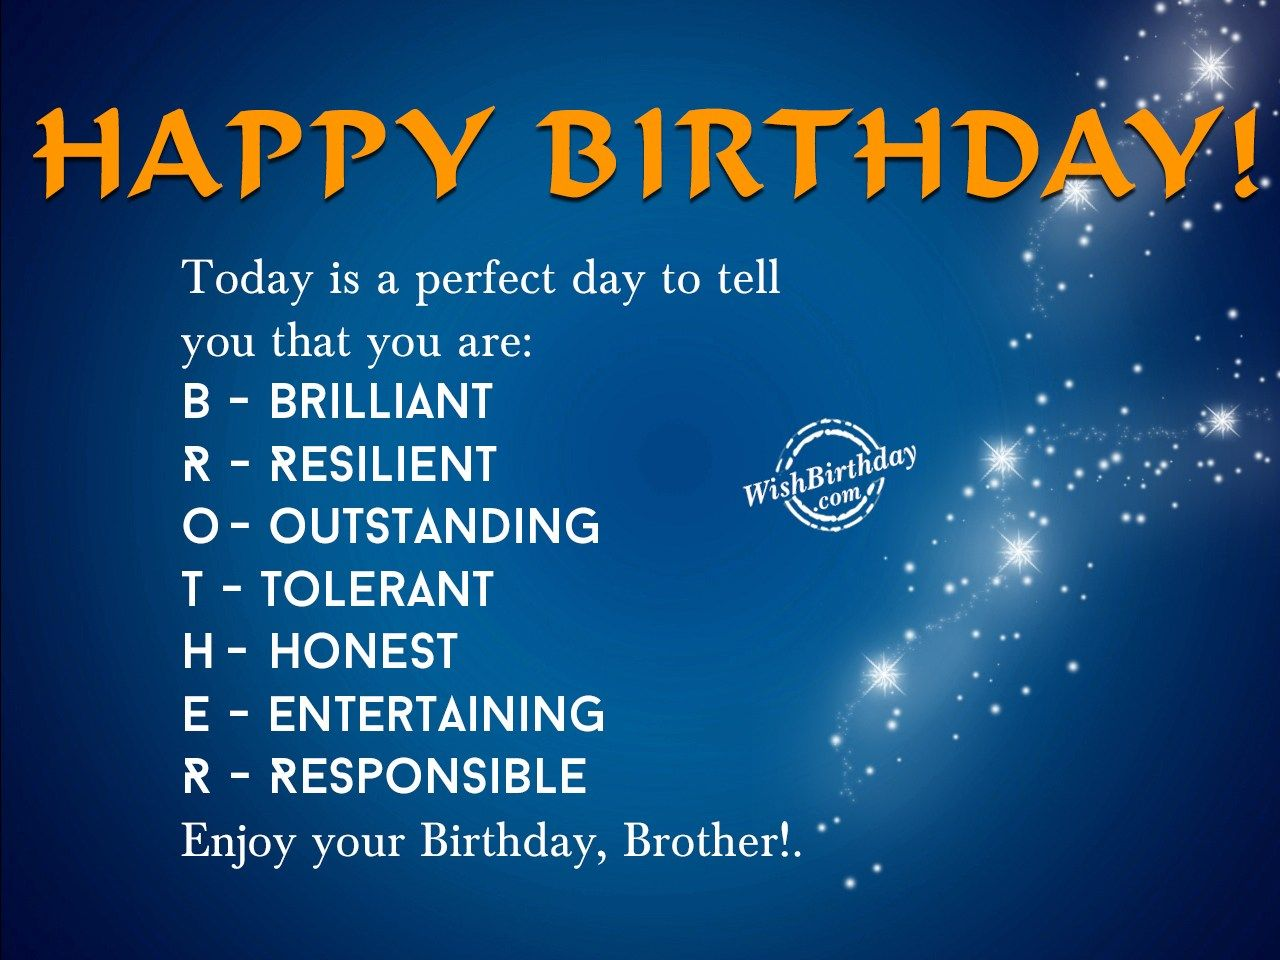 Birthday Wishes For Brother Birthday Images Pictures Birthday Wishes For Brother Wishes For Brother Brother Birthday Quotes